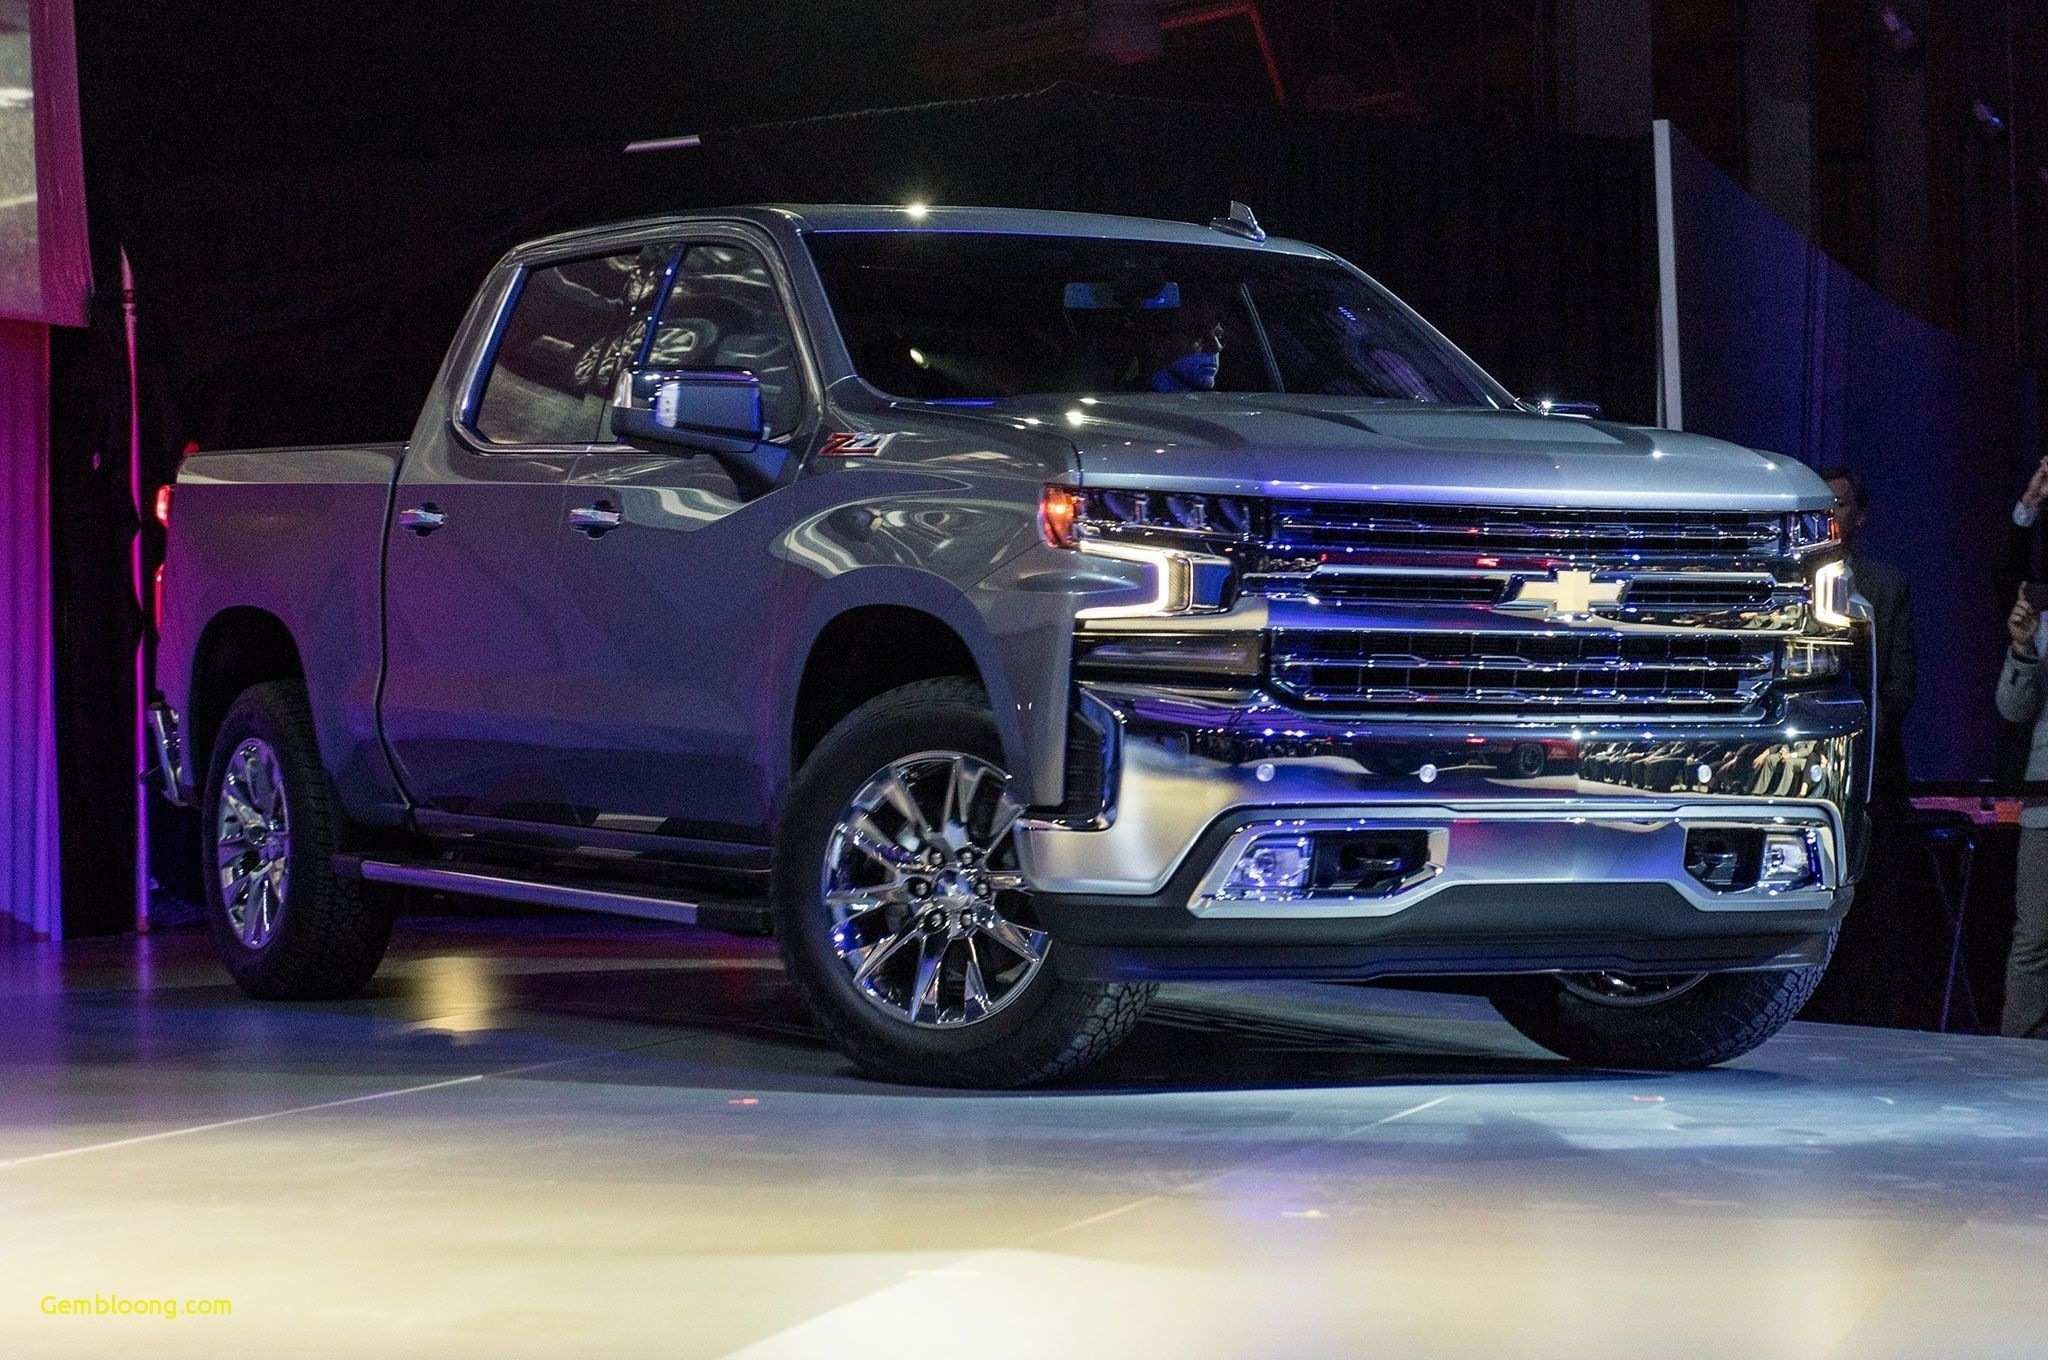 92 All New 2020 Chevy Cheyenne Ss Style